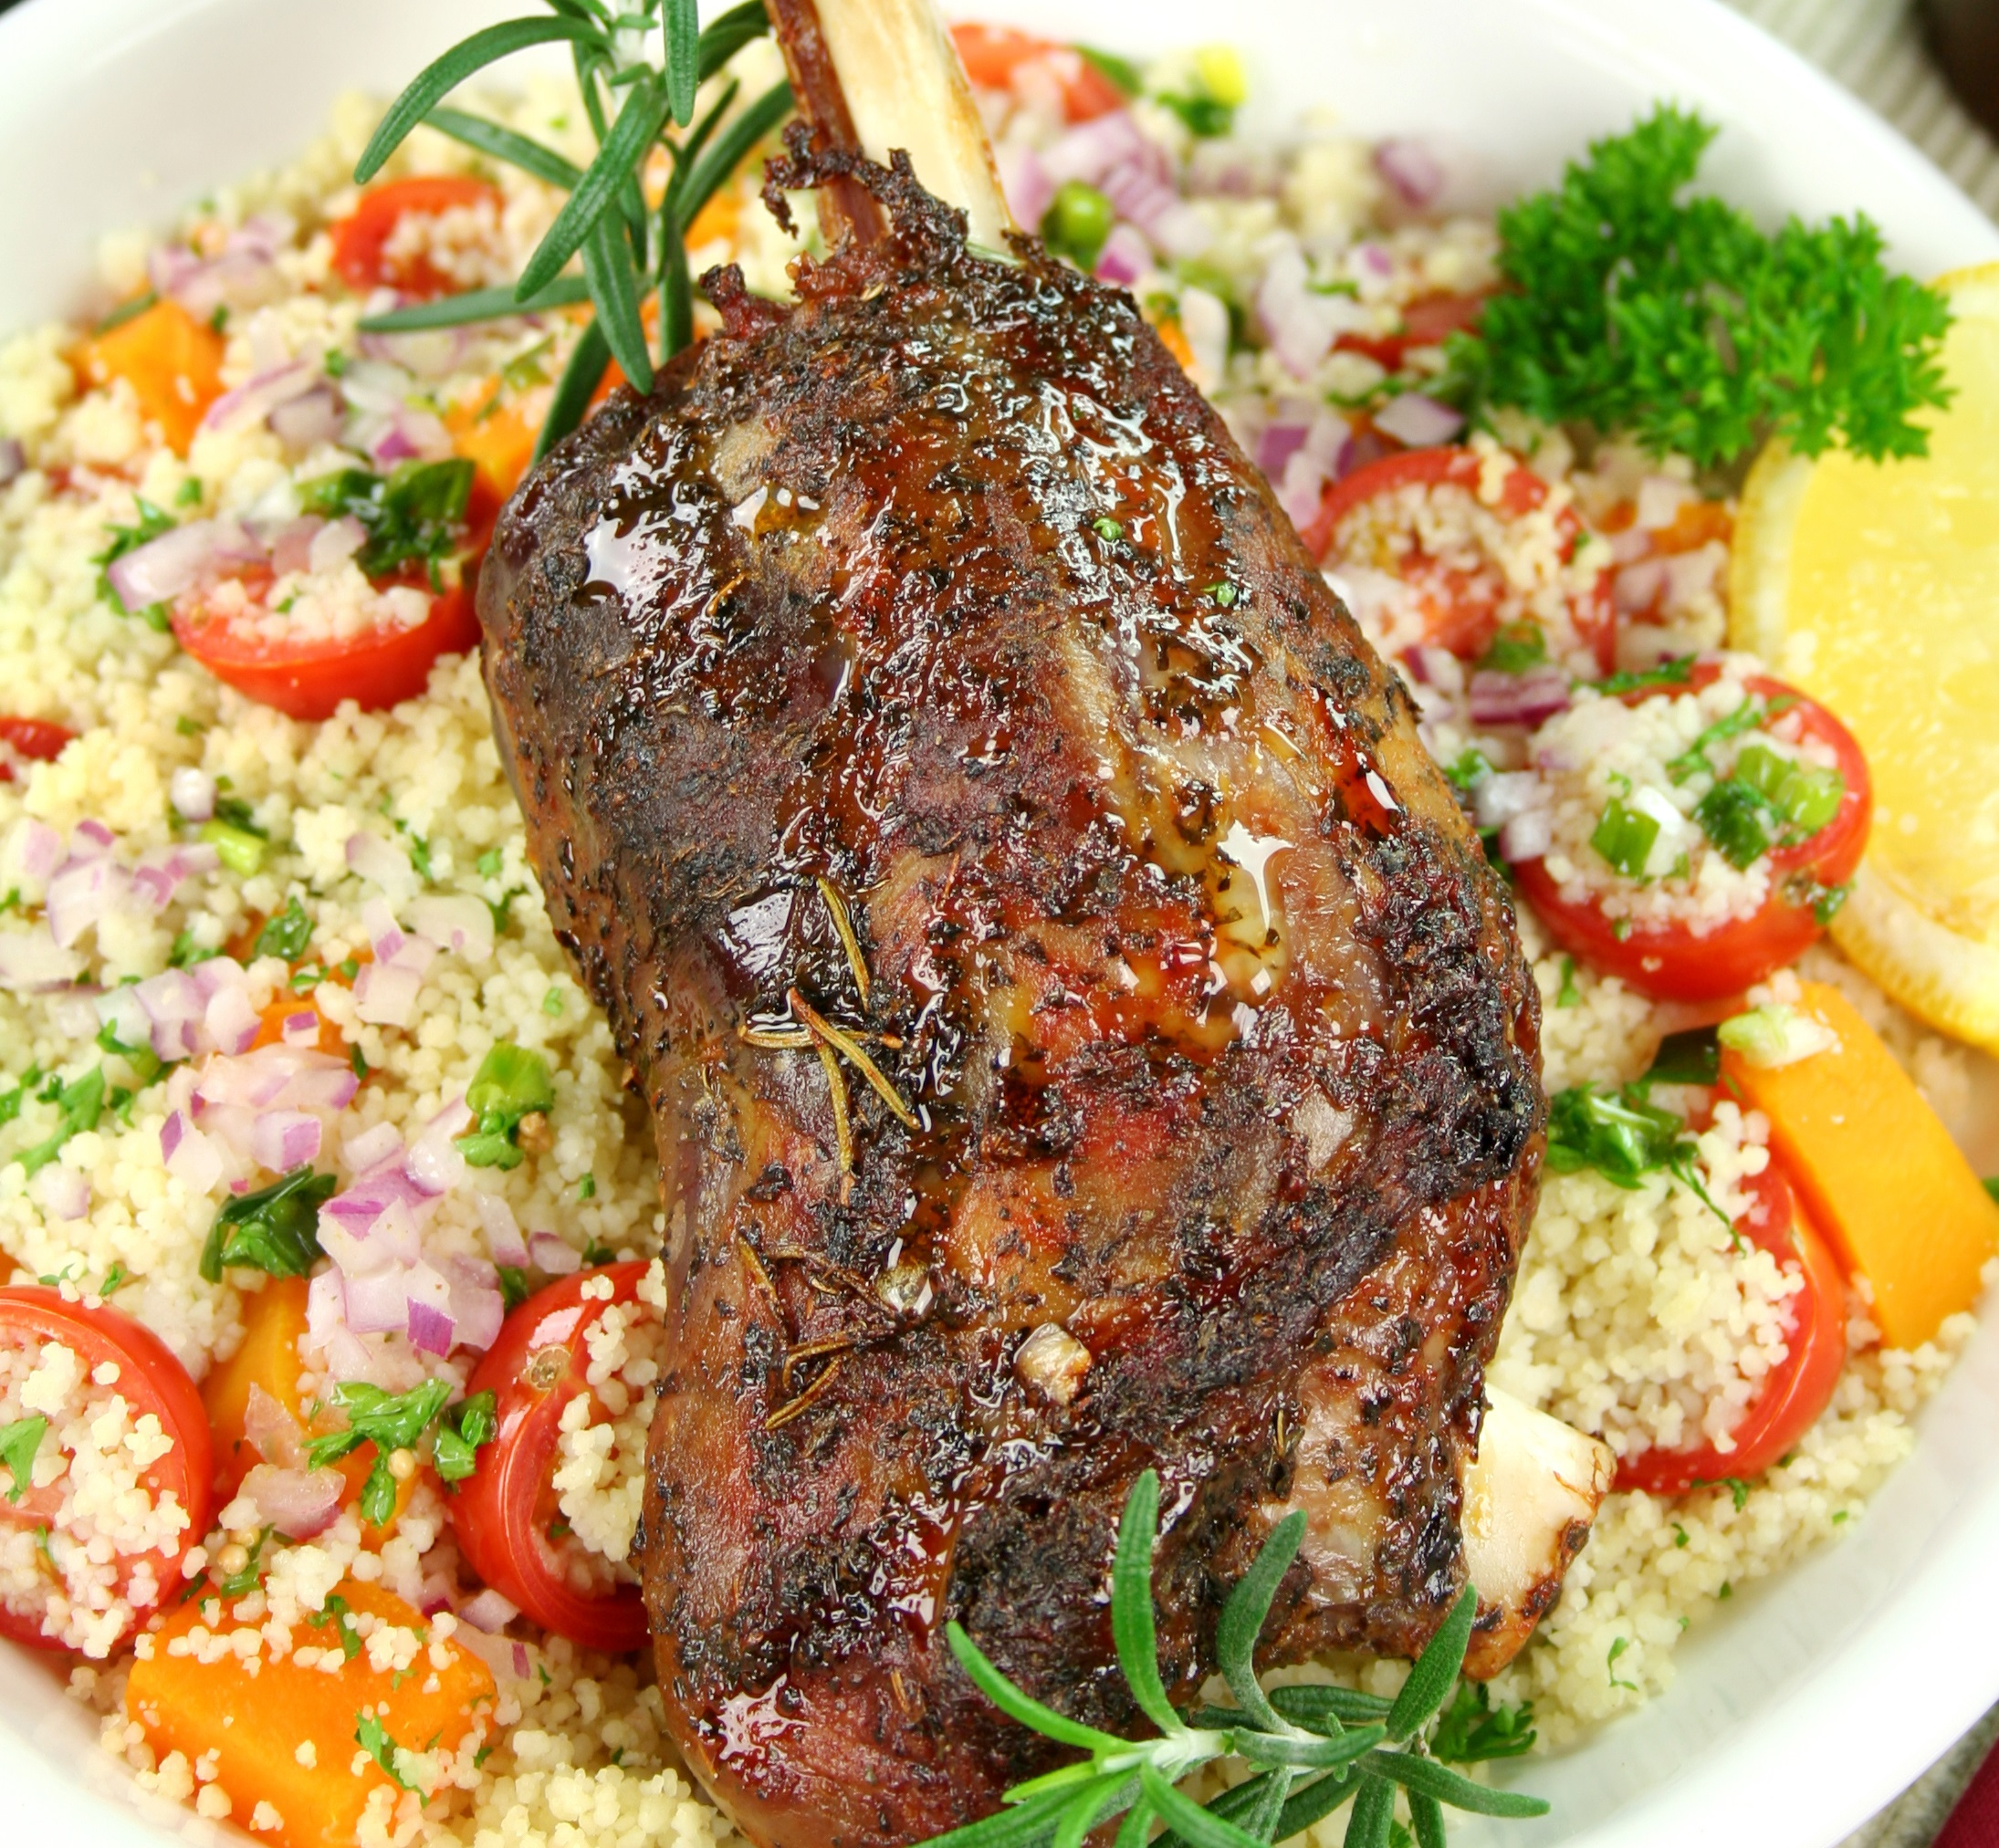 Lamb - Slow Roasted Lamb Shanks with Garlic and Rosemary